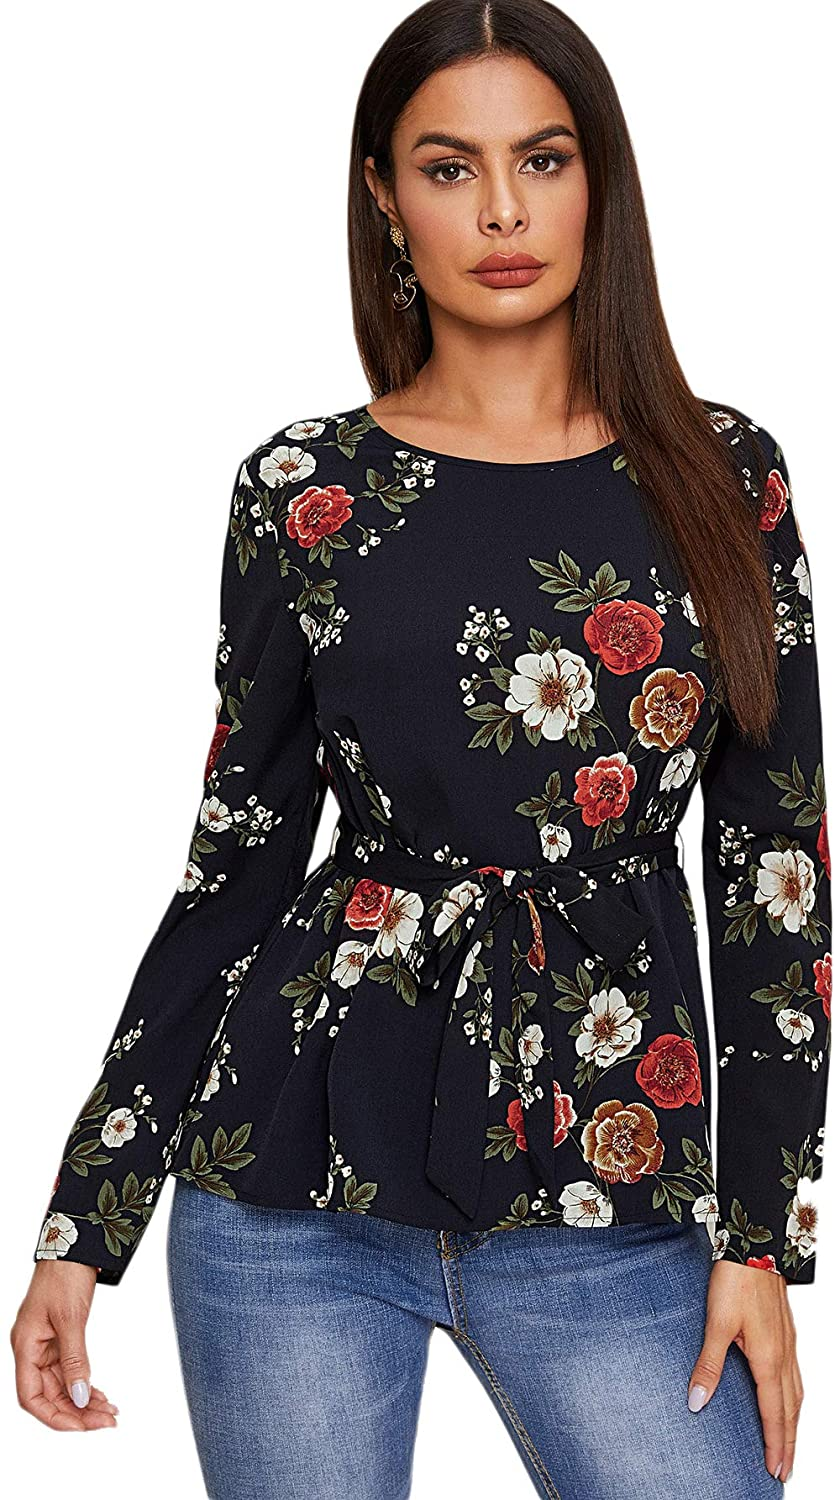 Floerns Women's Floral Print Long Sleeve Self Belted Casual Blouse Top